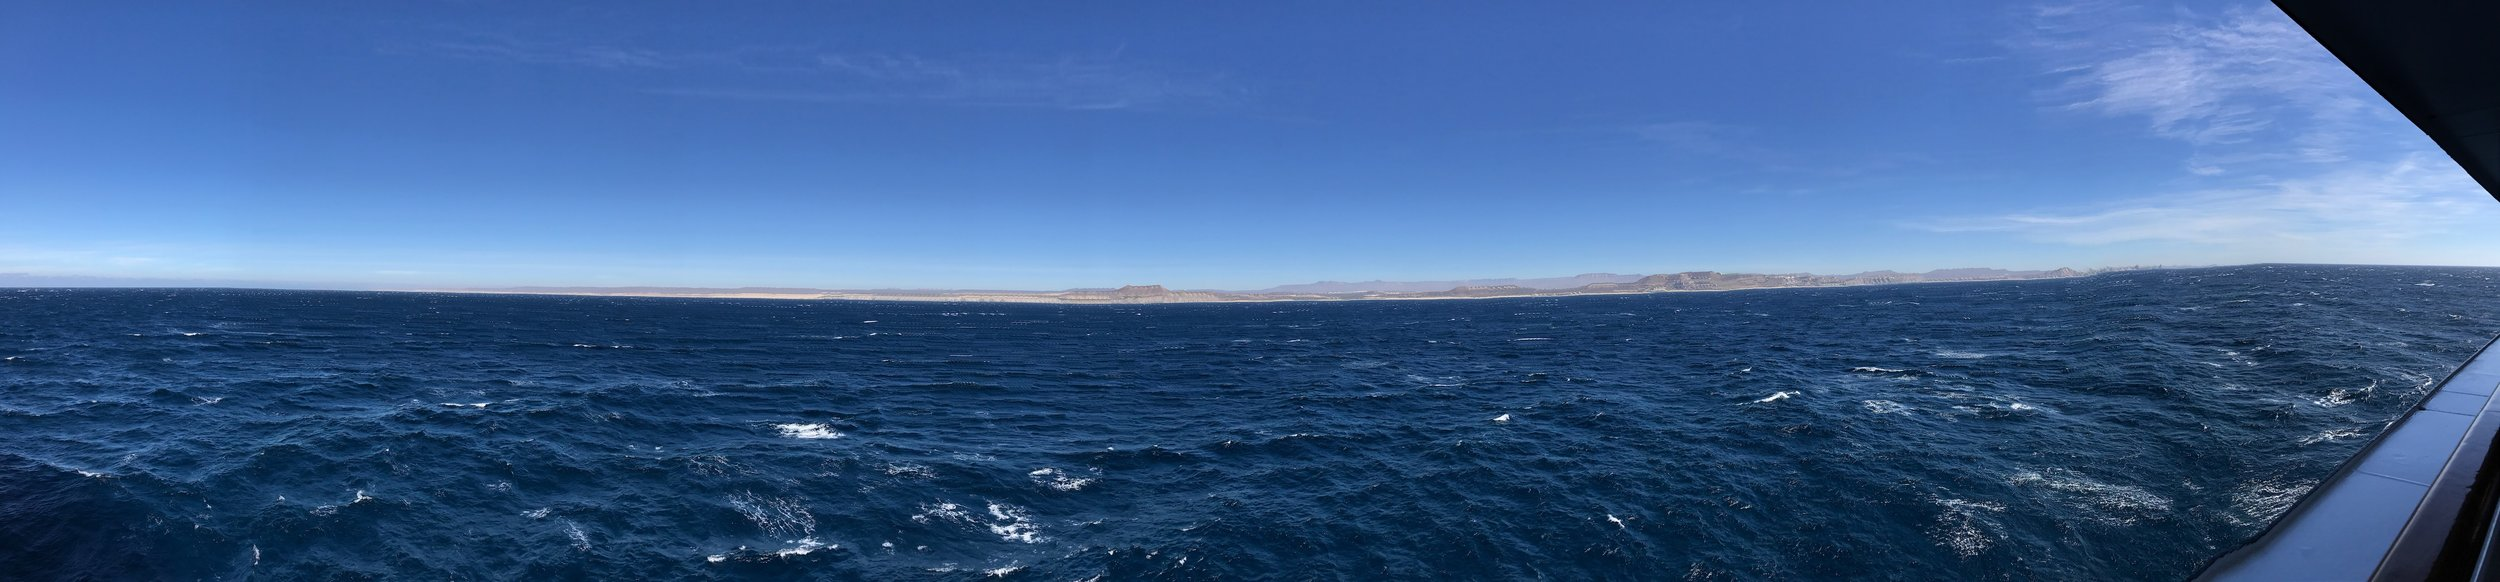 Panorama approaching Cabo